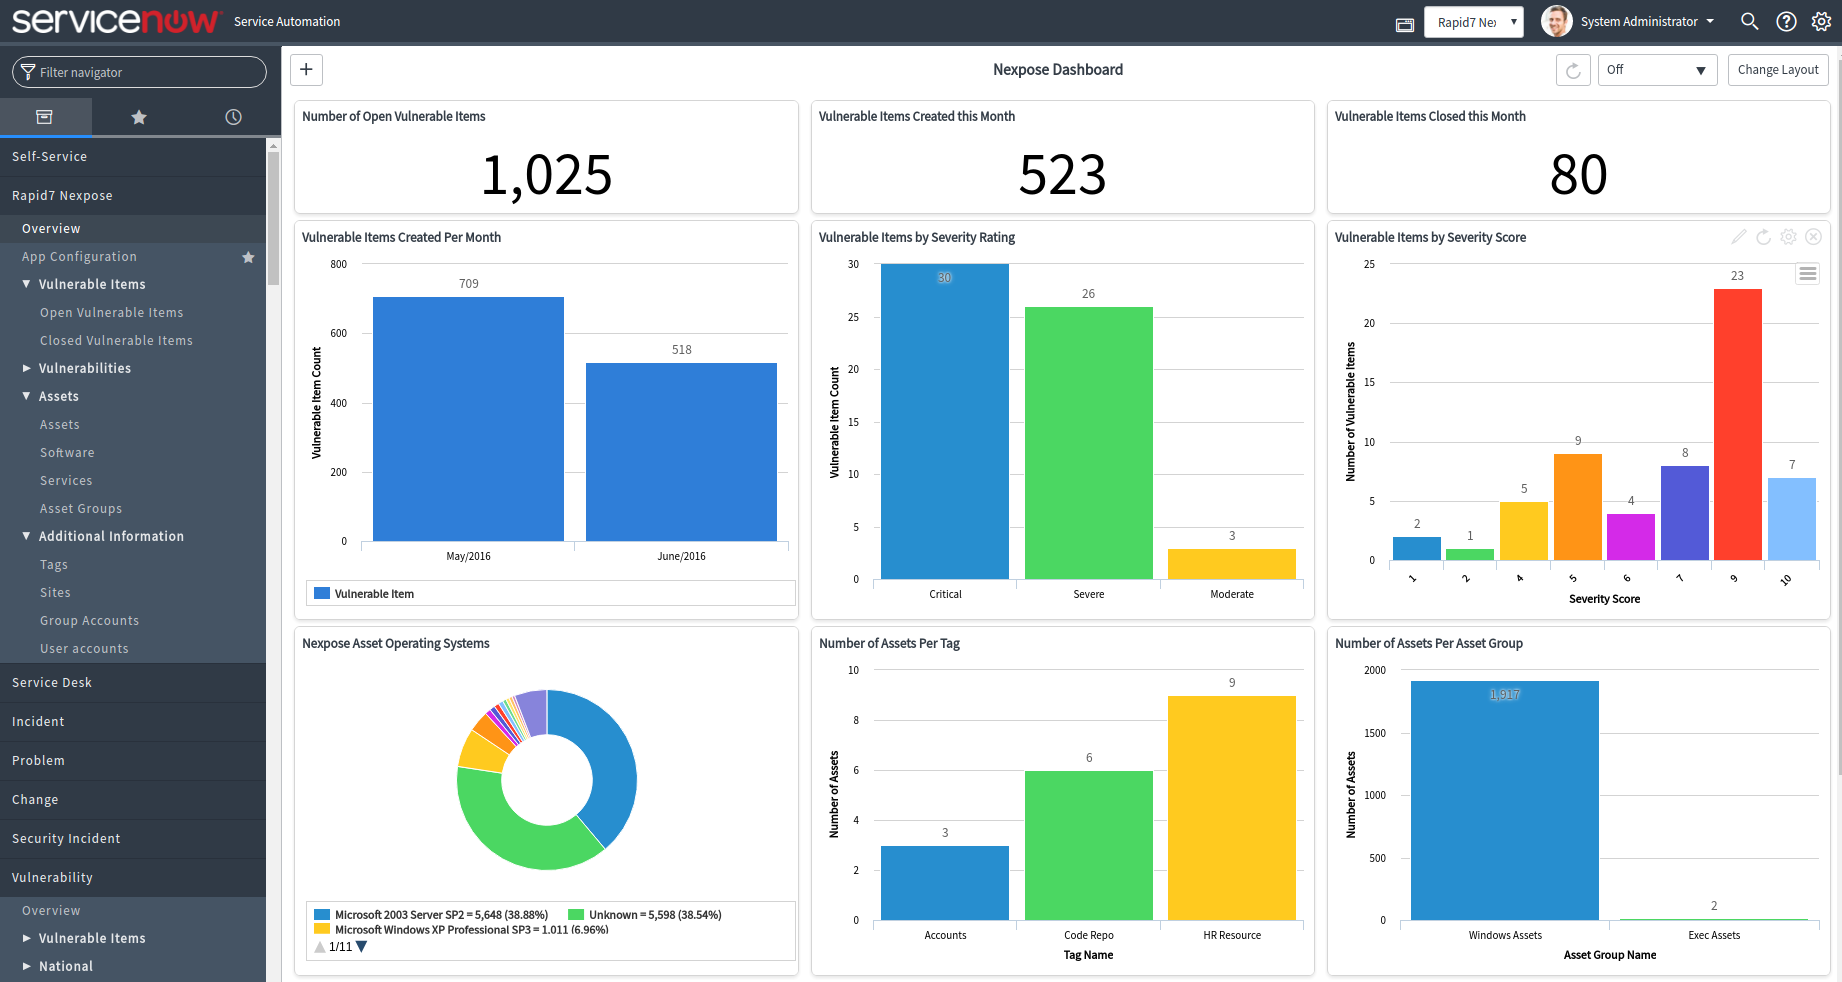 Rapid7 InsightVM Integrates with ServiceNow | Rapid7